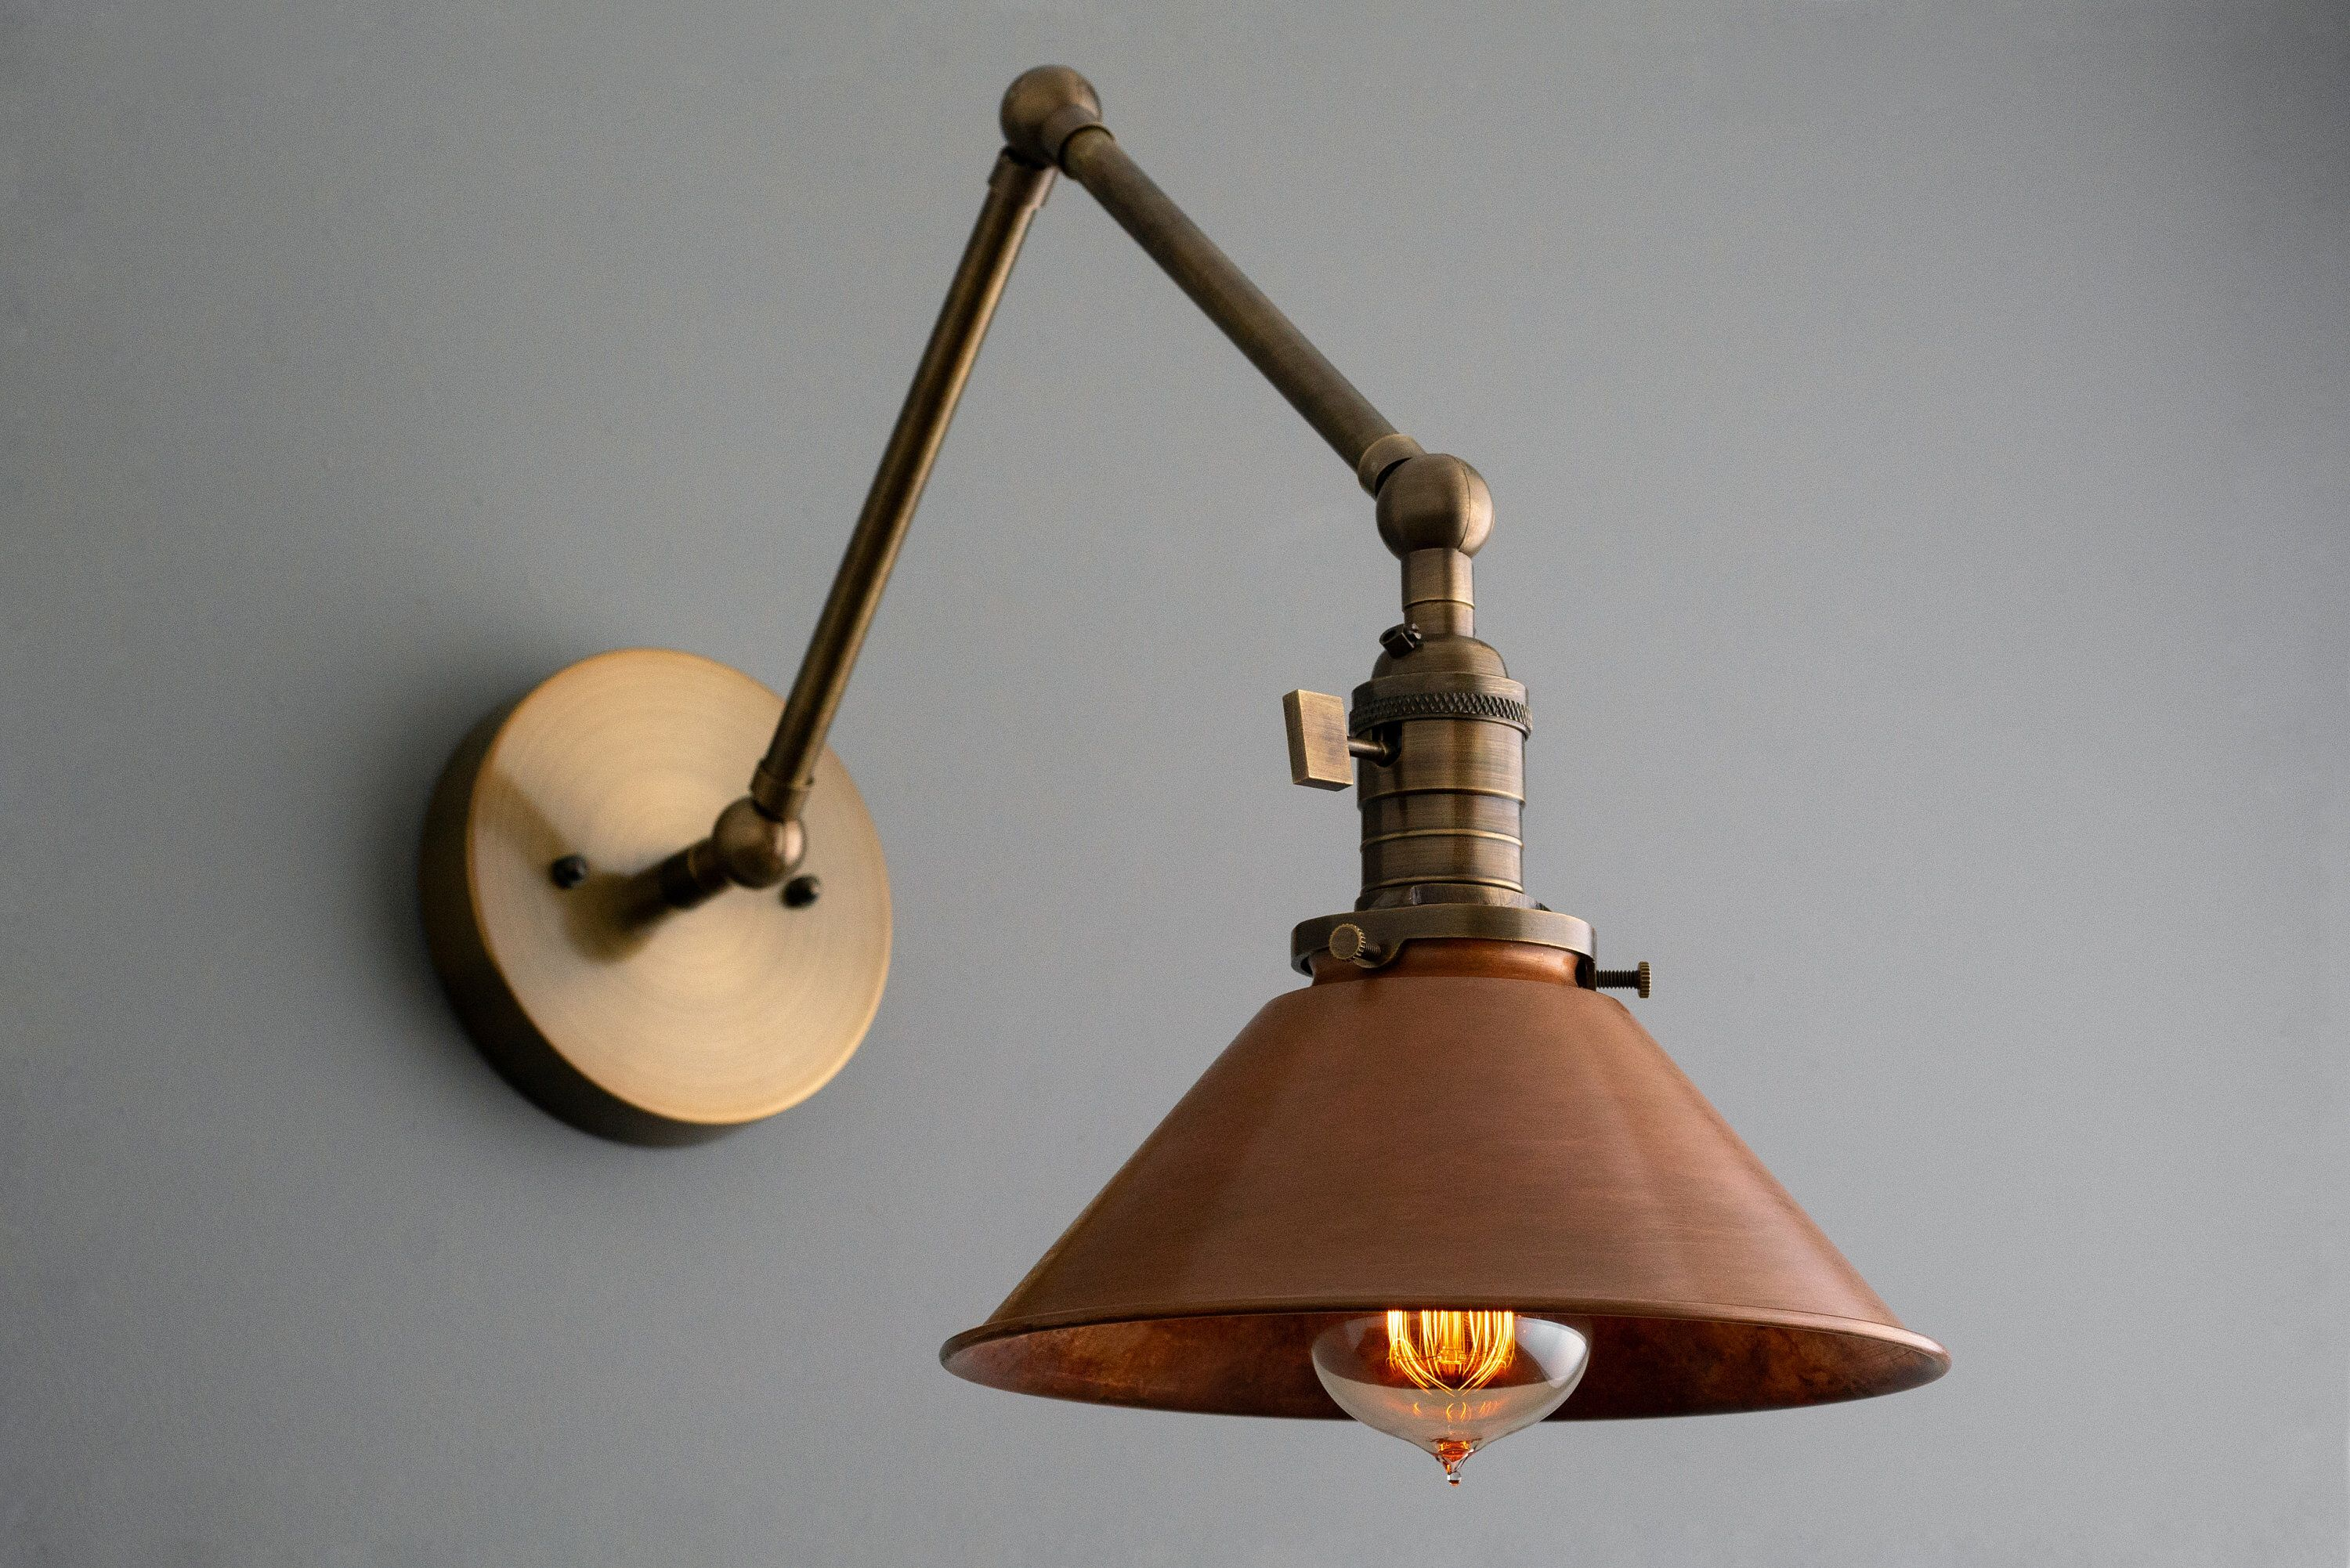 Articulating Copper Wall Sconce Rustic Lighting Swivel Wall Light Industrial Light Antique Brass Aged Copper Model No 6668 Copper Wall Sconce Rustic Wall Sconces Copper Wall Light Rustic wall light fixtures